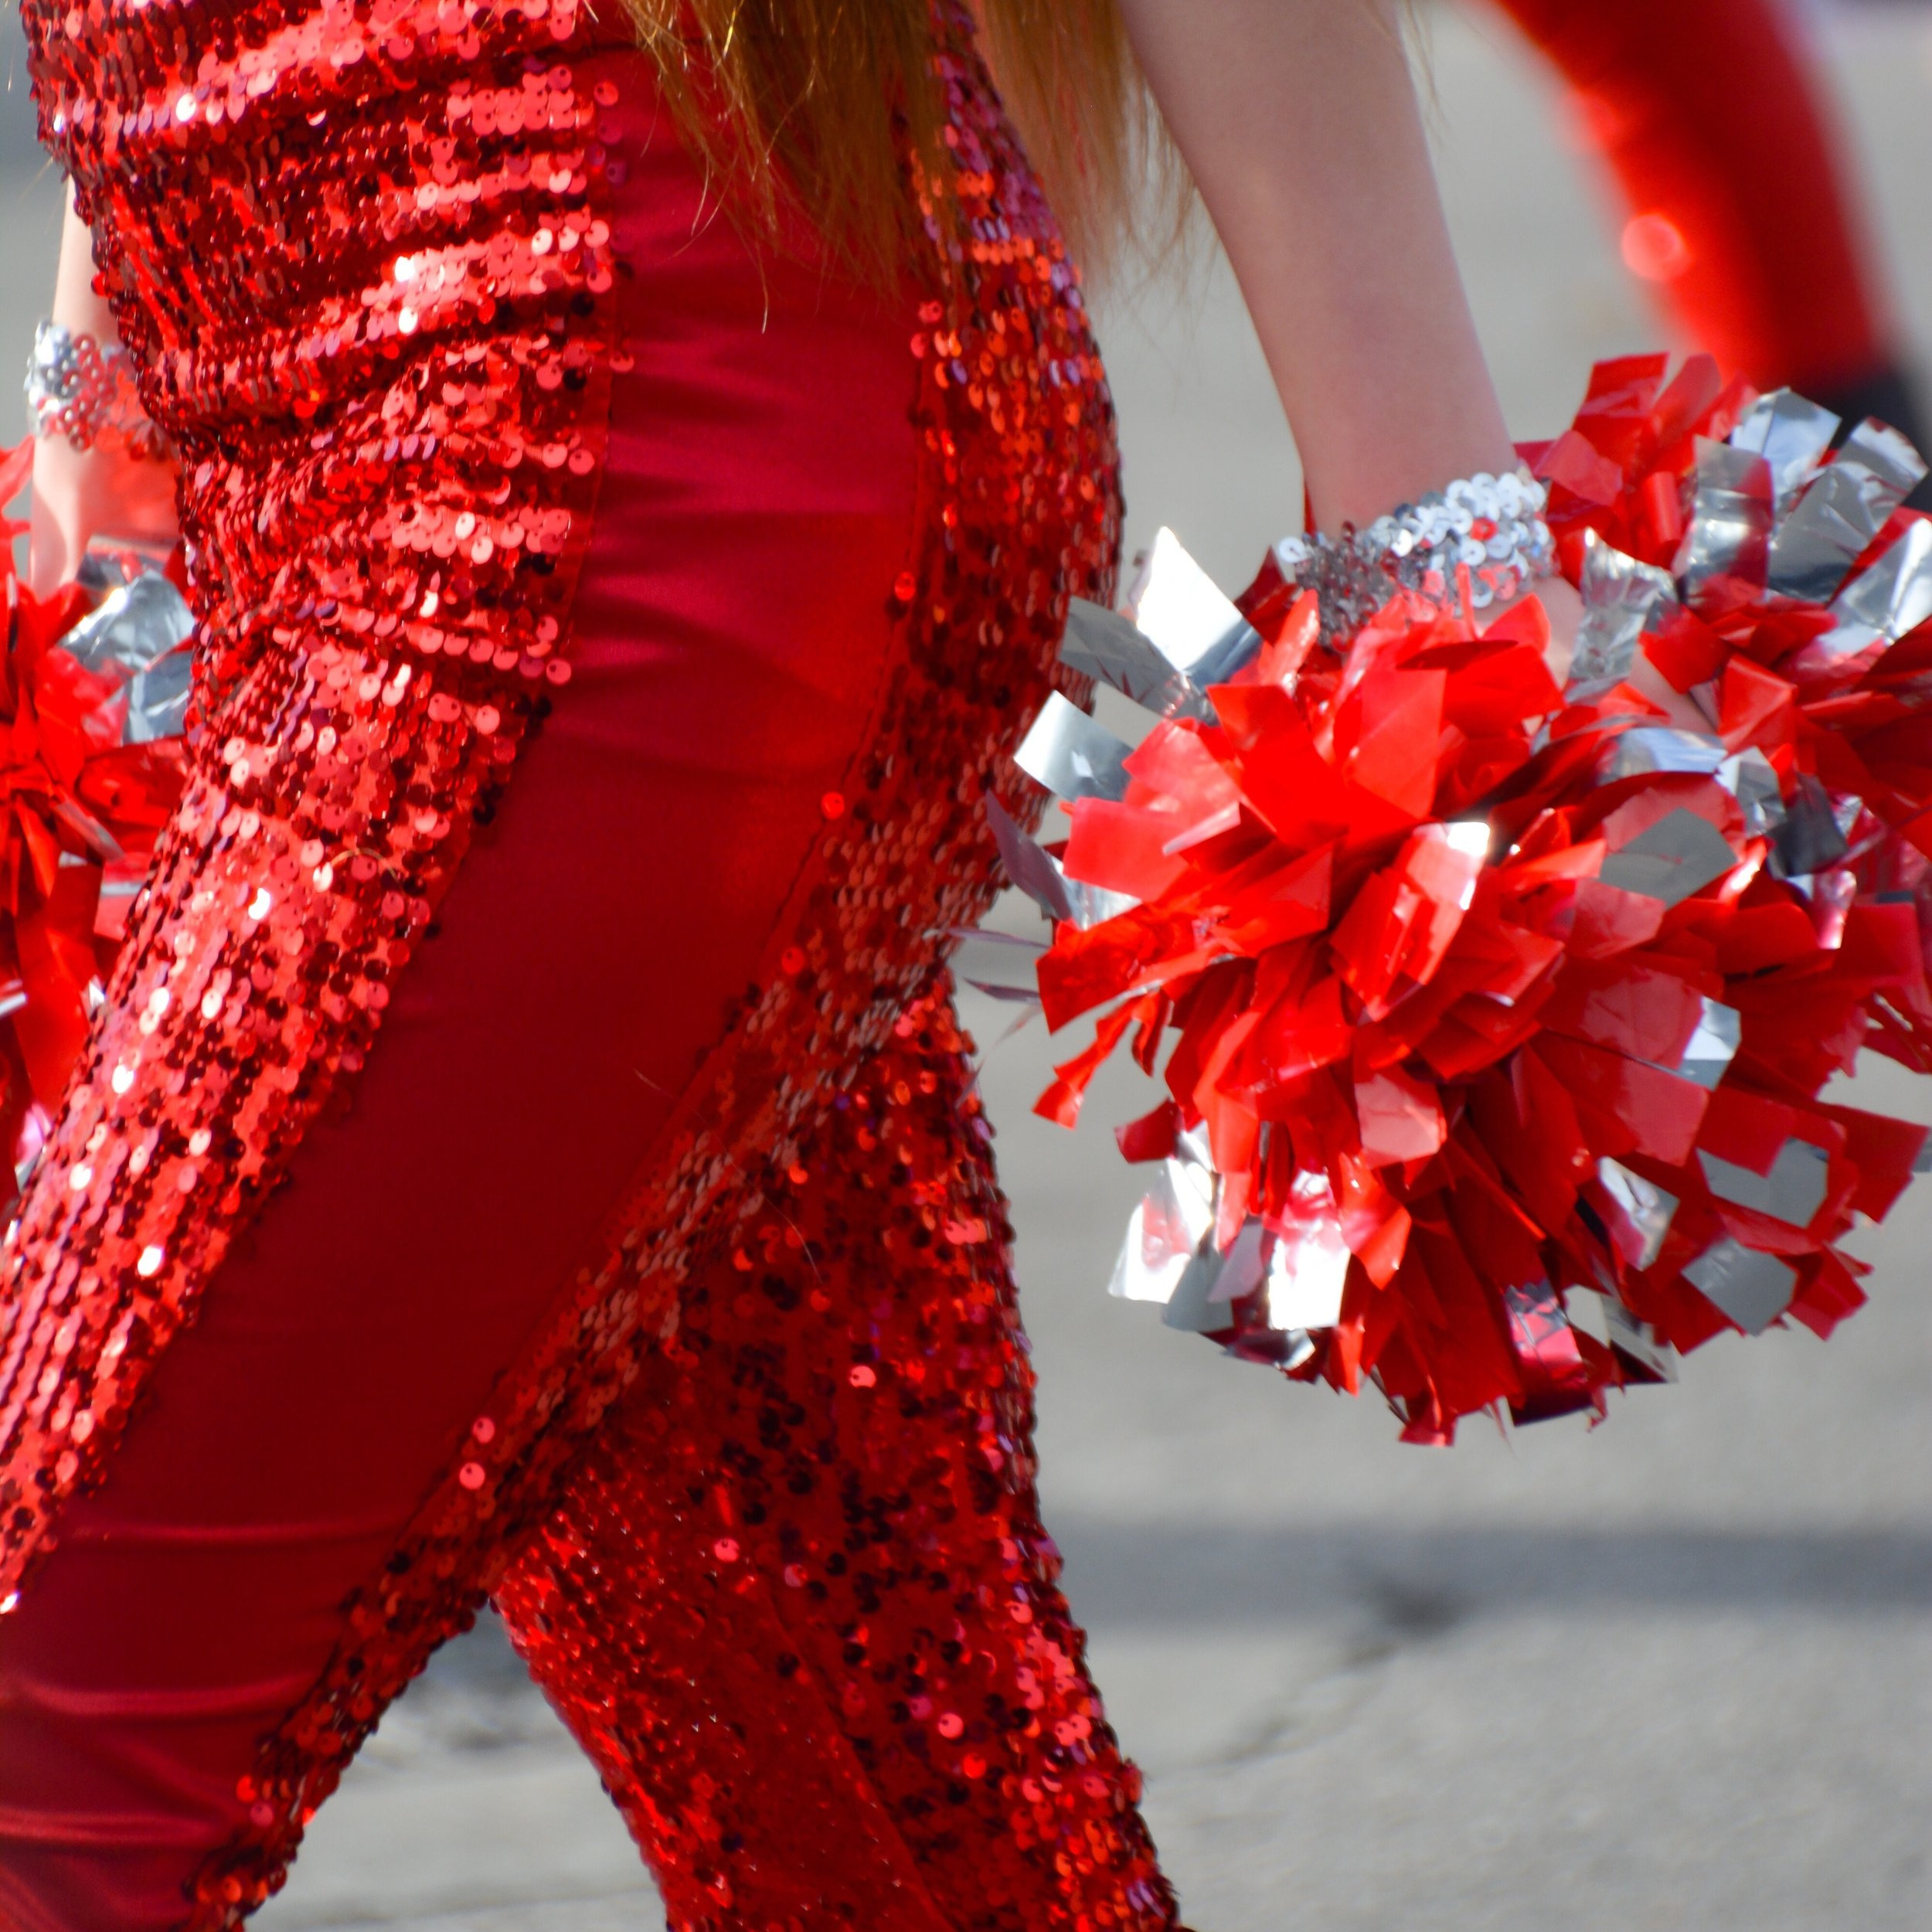 Performance Pom Prep - June 10th - June 28thThursdays 5:15 to 6:00pmJuly 8th - July 26Thursdays 5:15 to 6:00pmA great way to prepare dancers for the Performance Pom opportunity this fall! Dancers will work on pom motions, toe touches, and other dance team techniques! Team Spirit will not be in short supply as our future spirit leaders learn Pom technique.Price $41